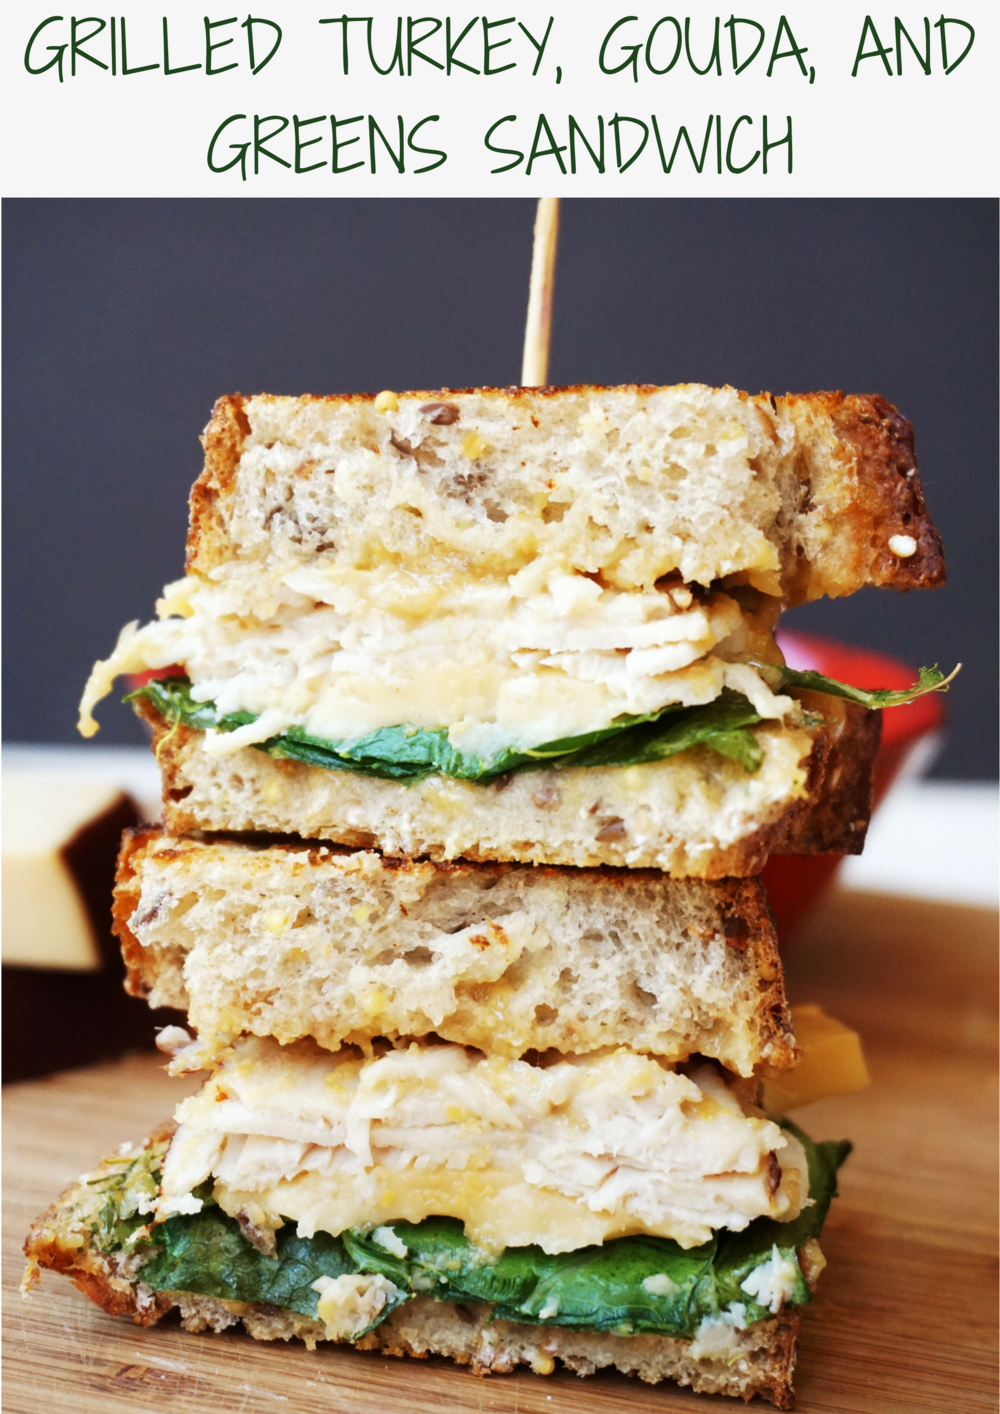 Grilled Turkey, Gouda, and Greens Sandwich